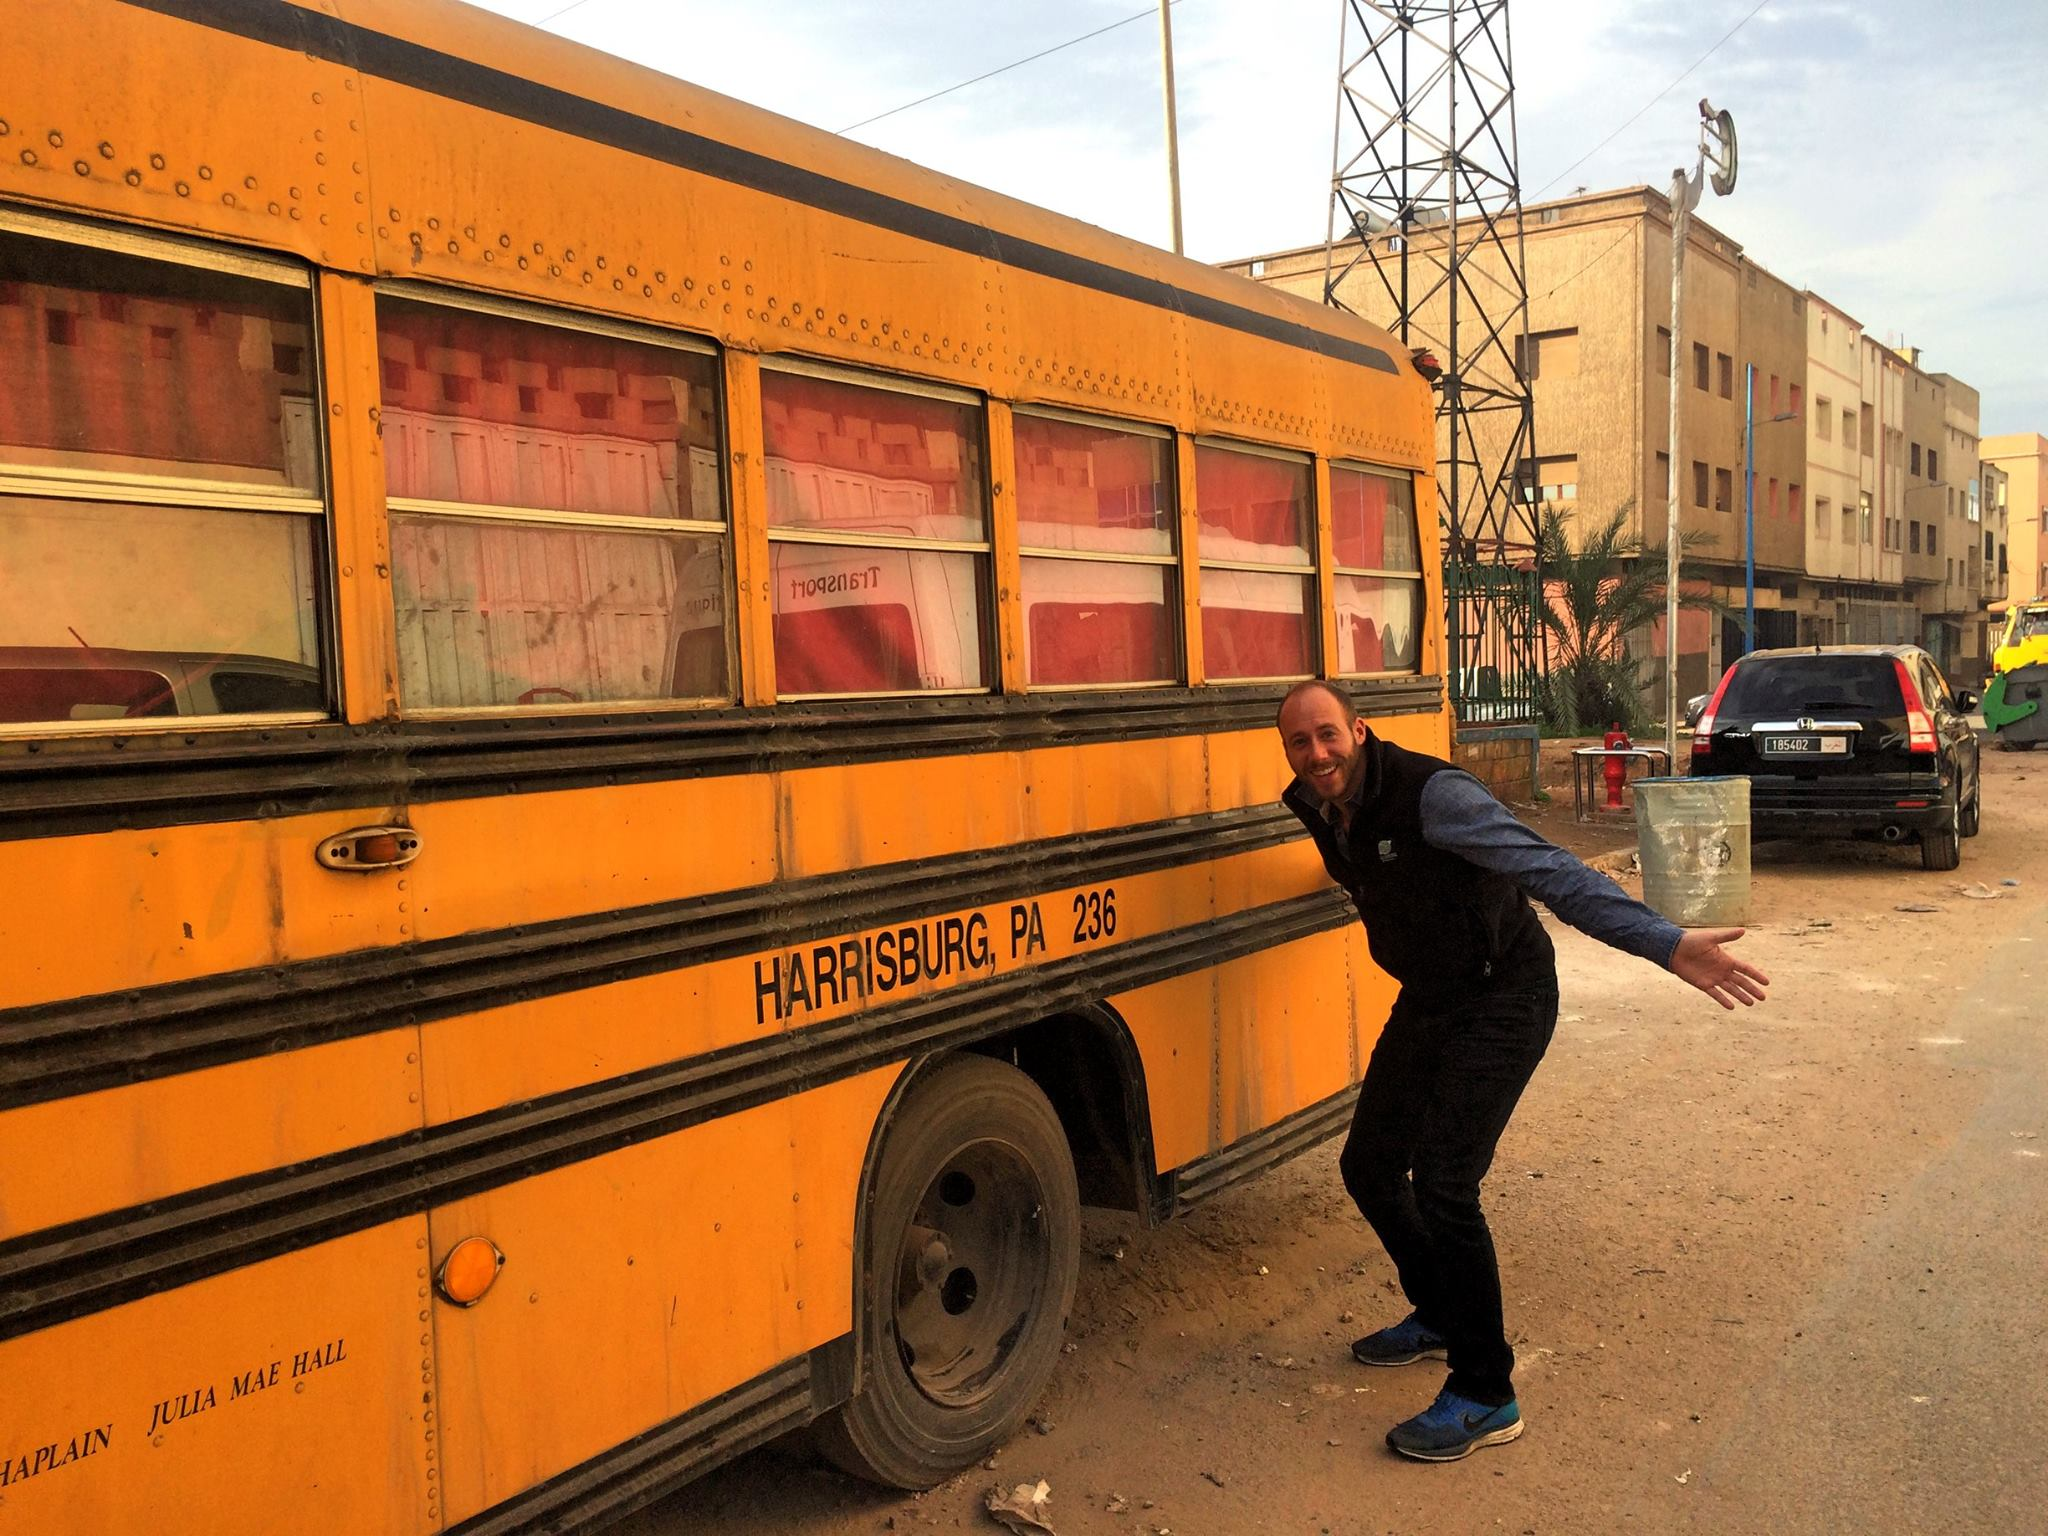 Found a school bus from our hometown of Harrisburg, PA while traveling in Morocco.